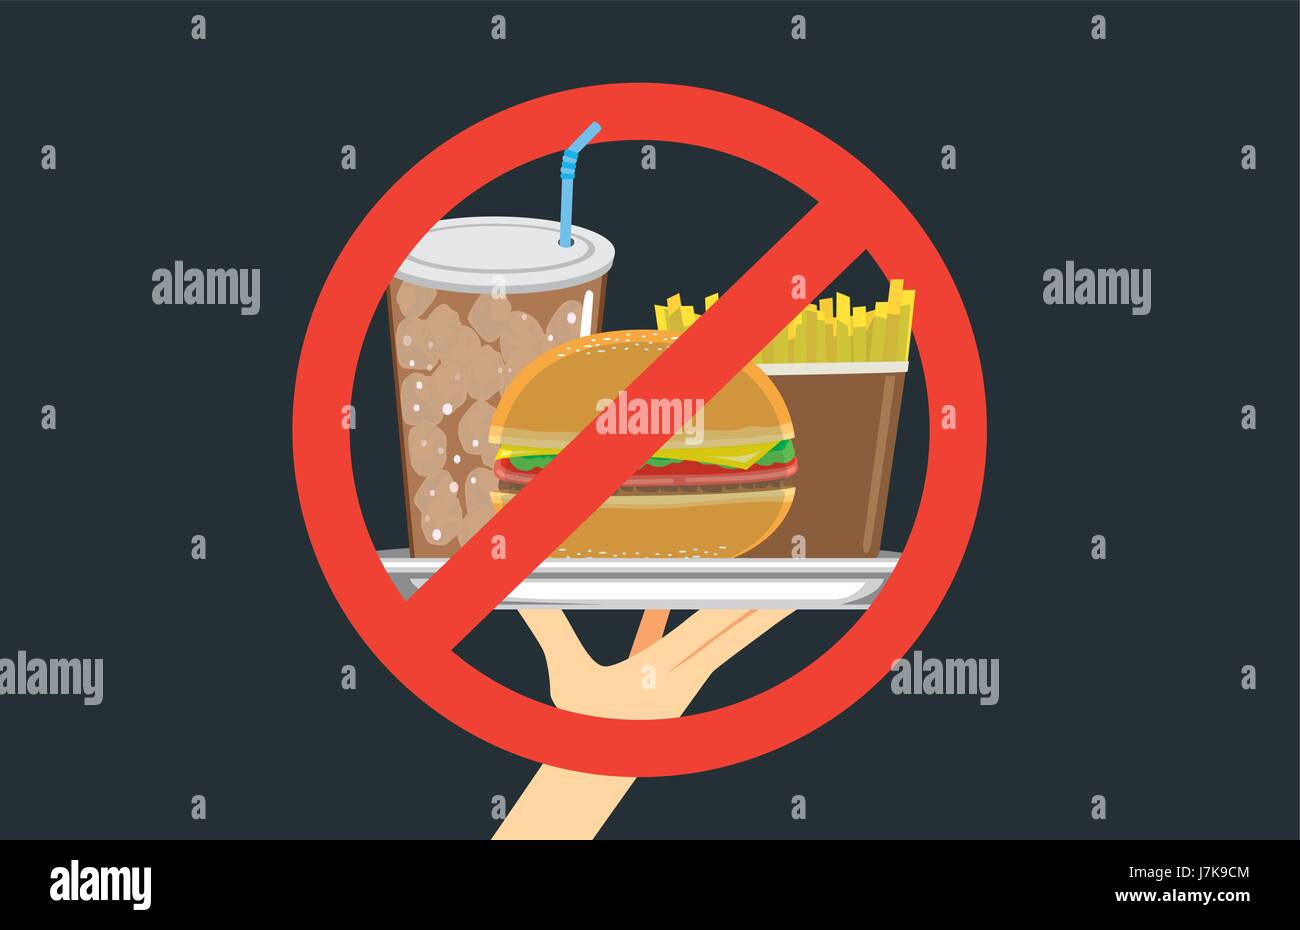 Hand holding fast food in silver dish with stop signal. Illustration about eating with wrong. - Stock Vector